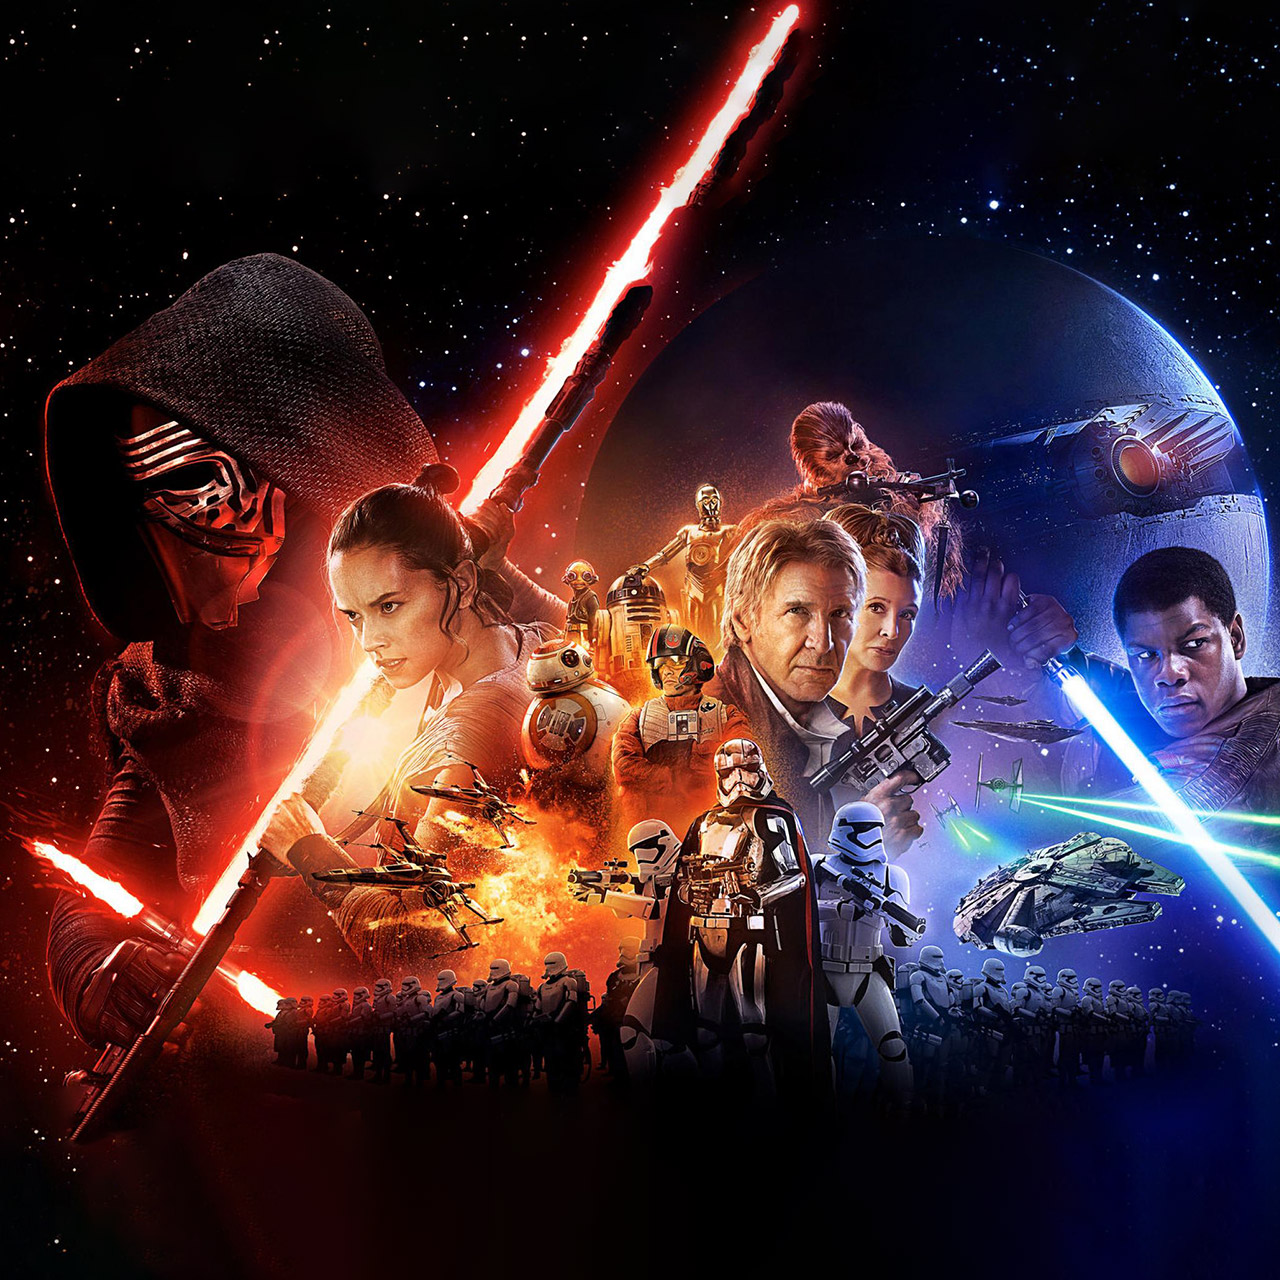 Star Wars The Force Awakens Samsung Galaxy Tab 7 wallpapers Tablet 1280x1280